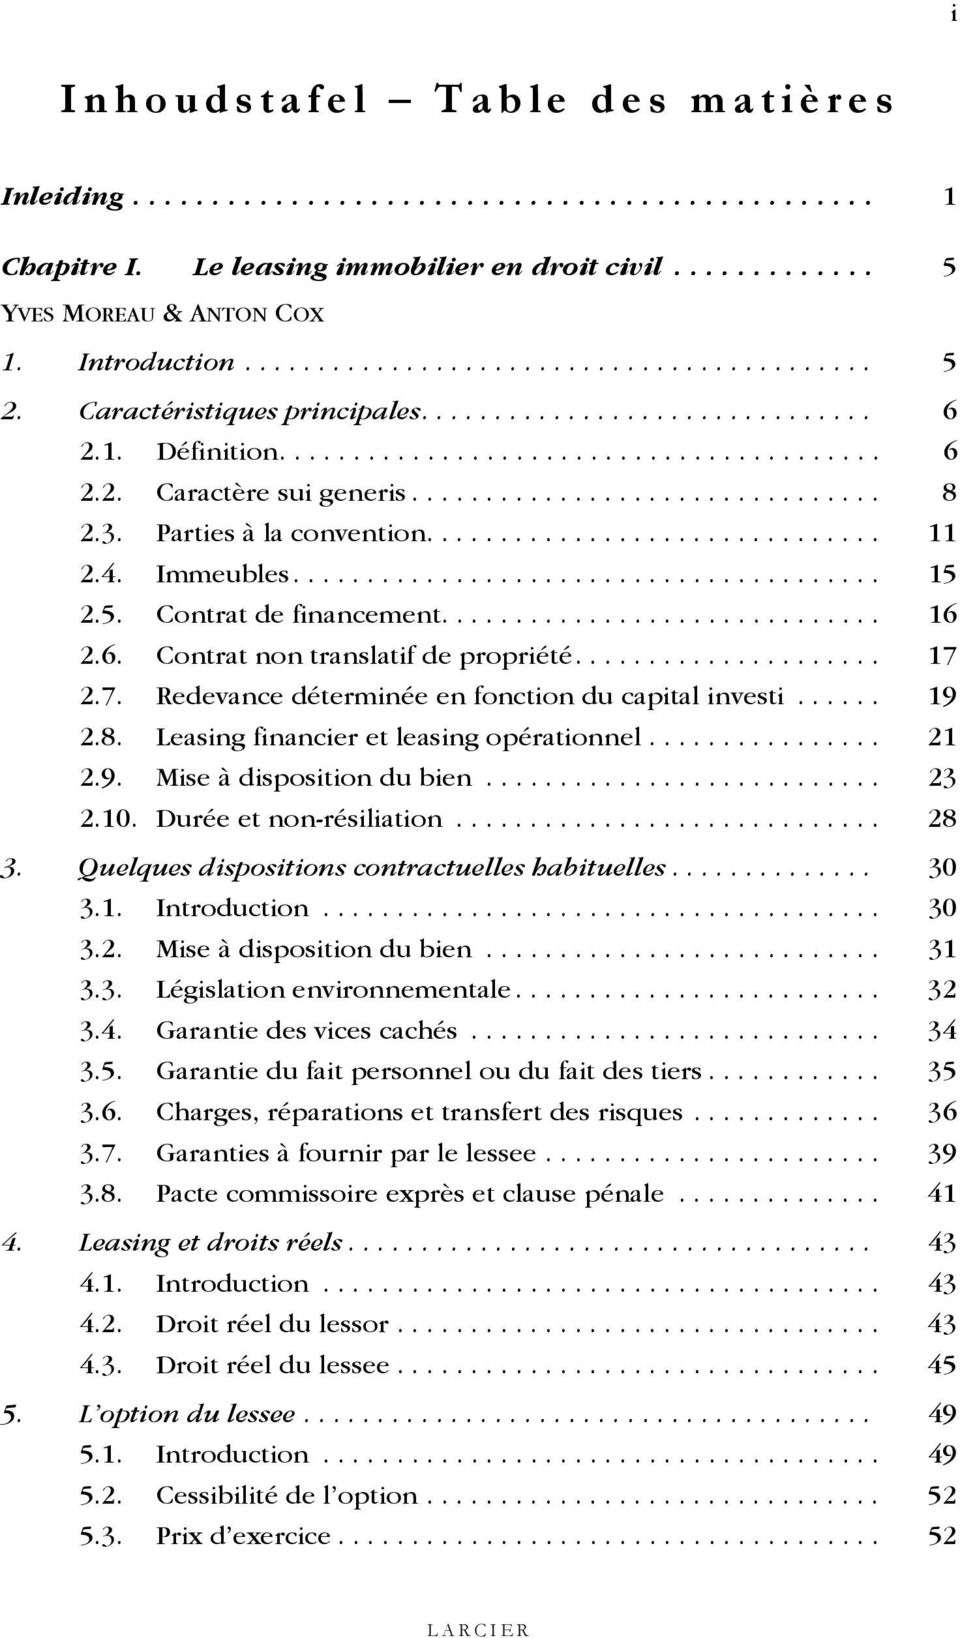 ............................... 8 2.3. Parties à la convention............................... 11 2.4. Immeubles........................................ 15 2.5. Contrat de financement.............................. 16 2.